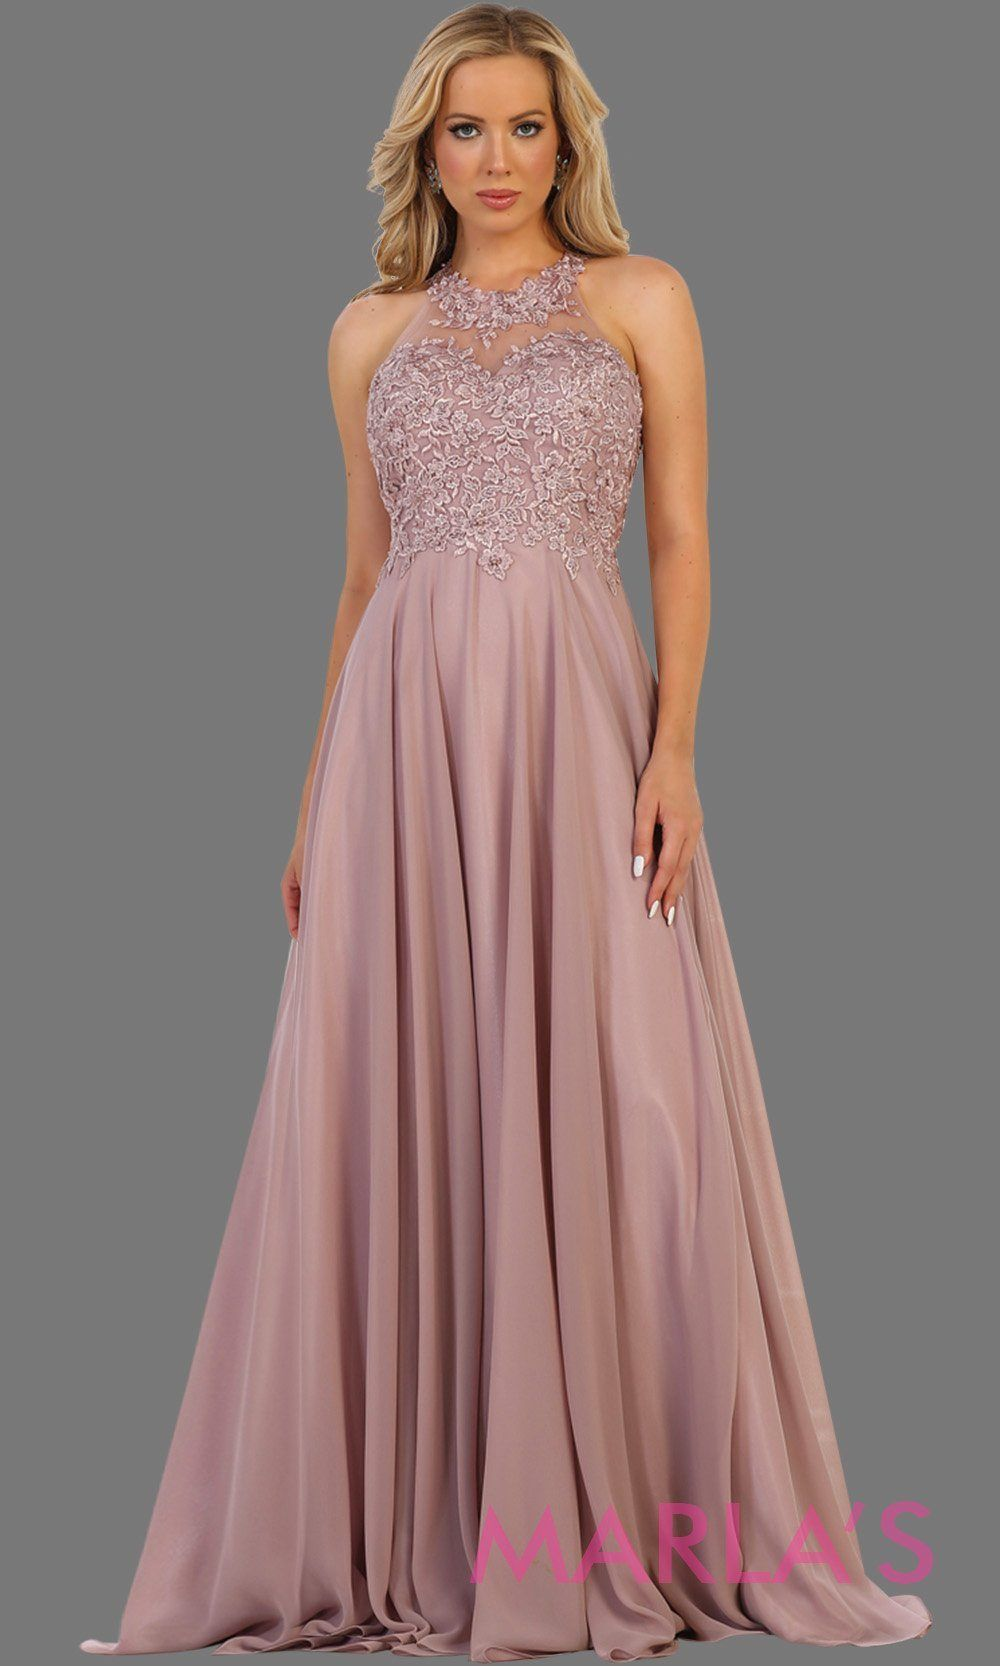 de84a9b809bdb Long dusty rose flowy high neck dress with lace top and open back. Perfect  for mocha prom dress, wedding guest dress,formal party evening gown, ...